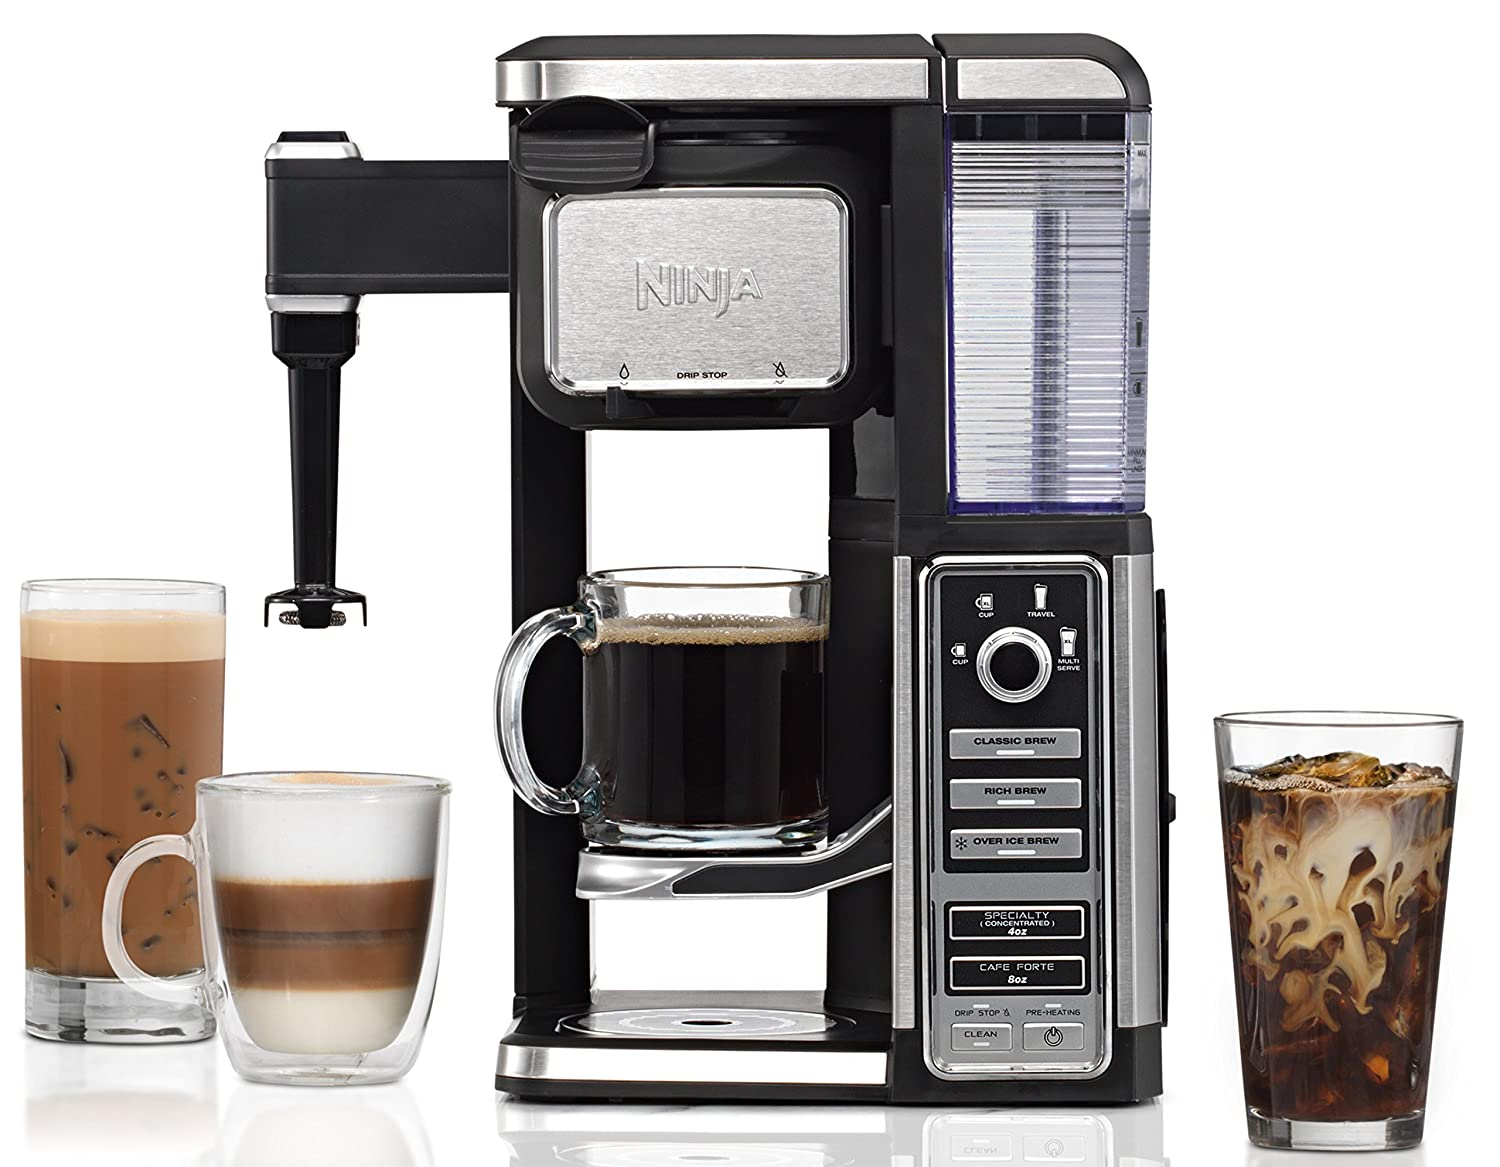 Ninja Single-Serve, Pod-Free Coffee Maker Bar with Hot and Iced Coffee, Auto-iQ, Built-In Milk Frother, 5 Brew Styles, and Water Reservoir (CF112) (Certified Refurbished) SharkNinja